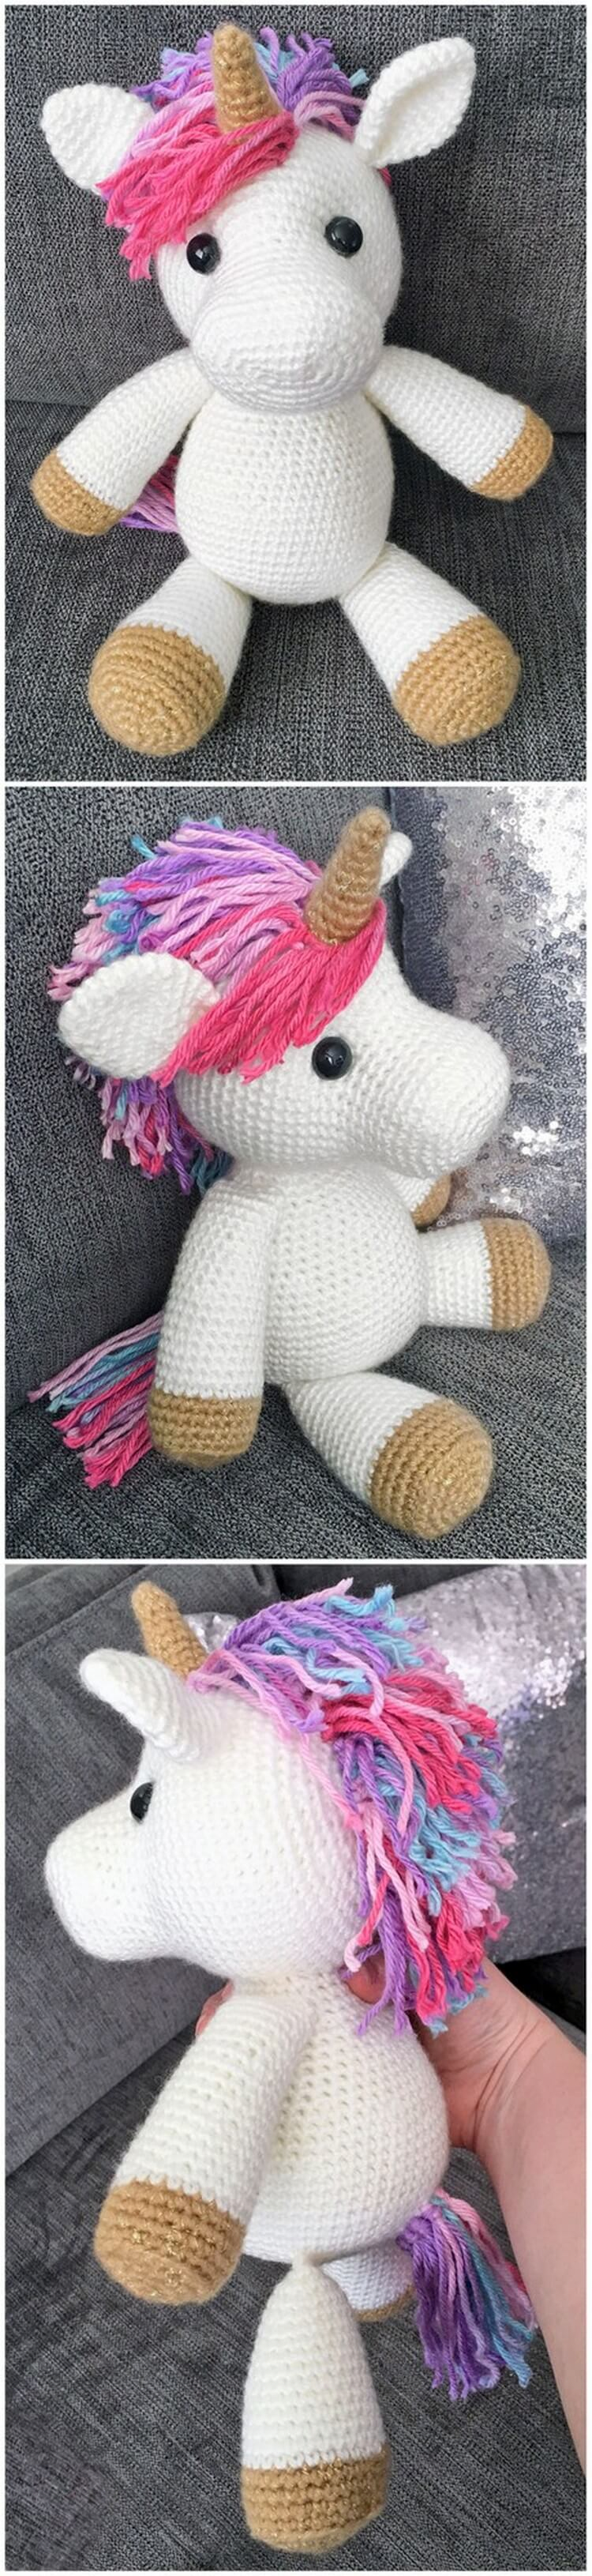 Crochet Unicorn Pattern (29)